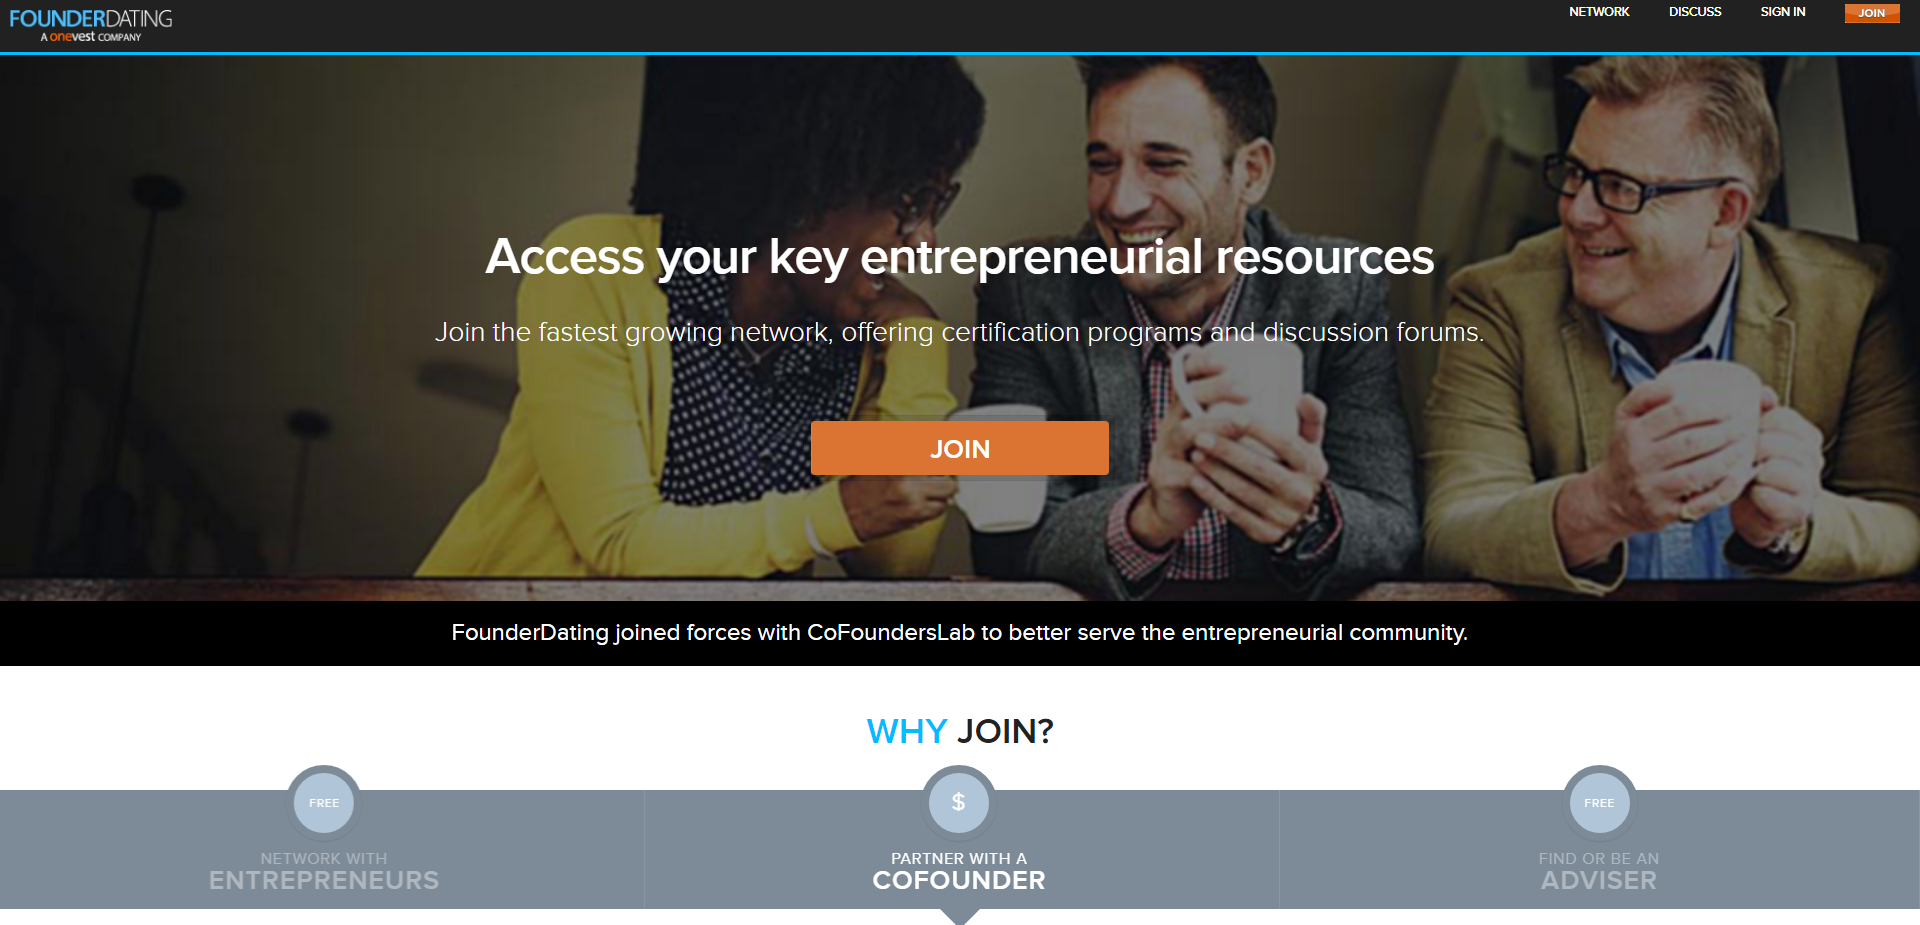 Founderdating contact